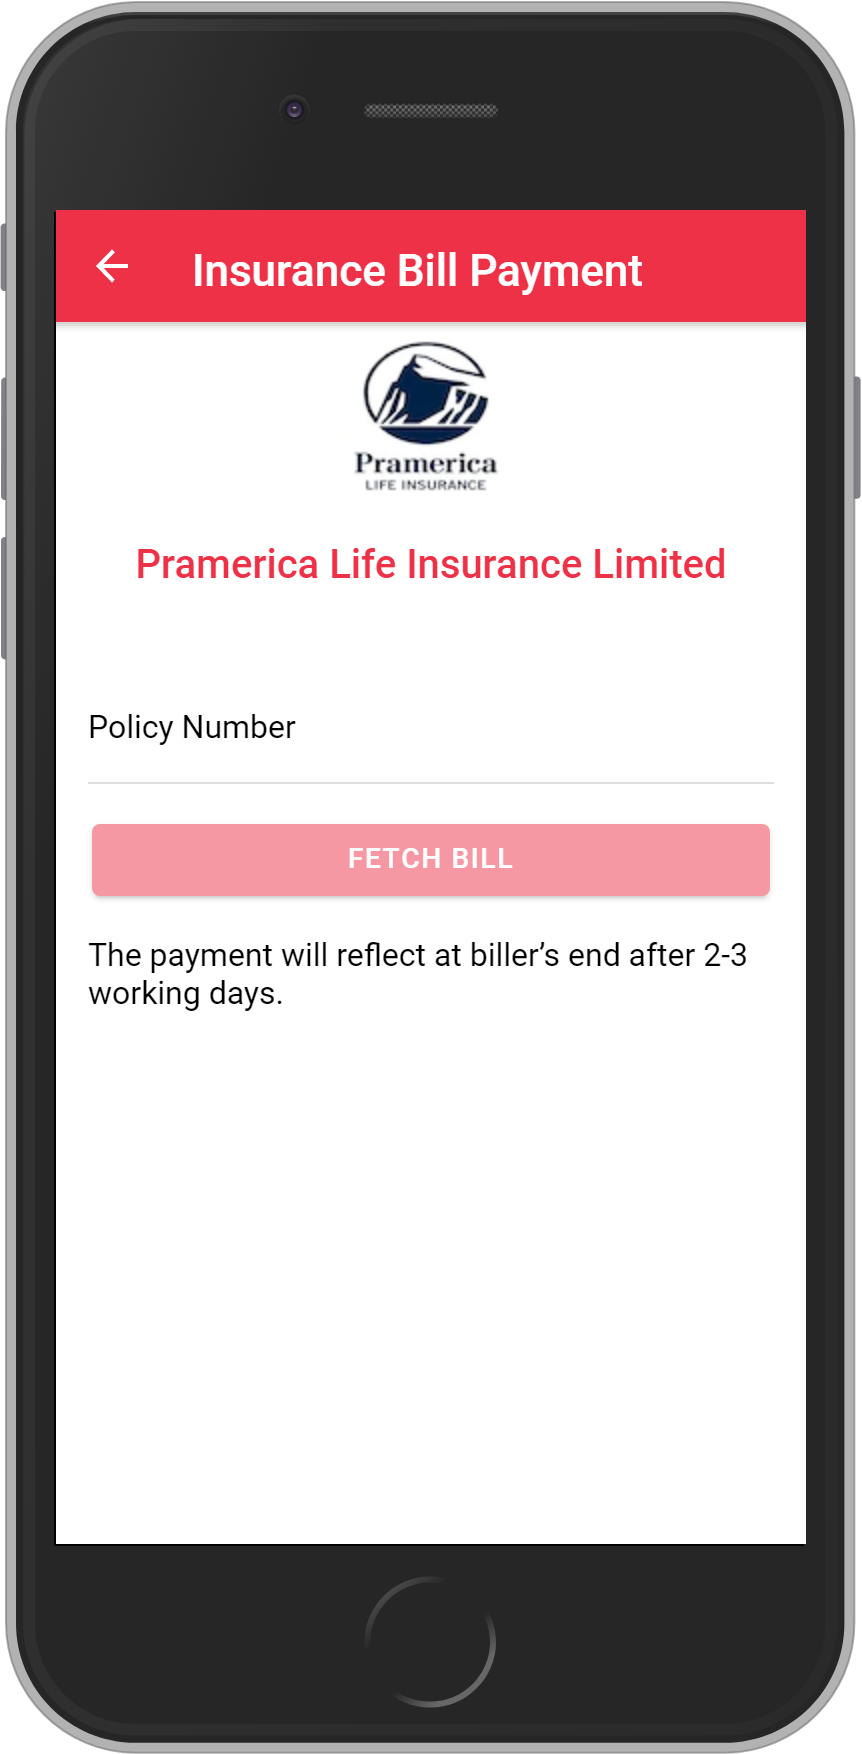 Get UNLIMITED <b>0.10%</b> CASHBACK on Pramerica Life Insurance Limited Payment.